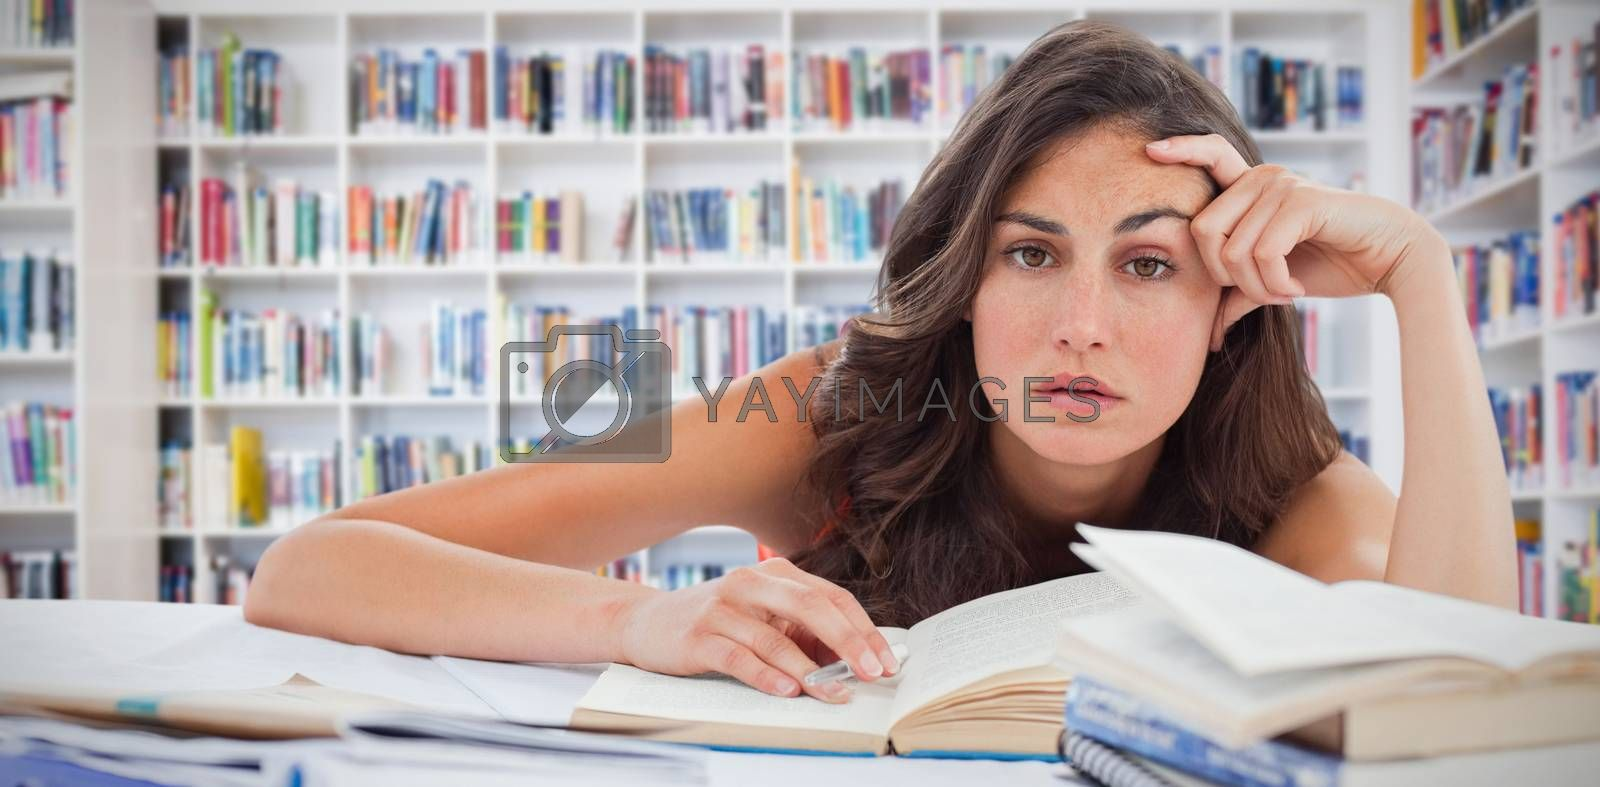 Composite image of bored student doing her homework by Wavebreakmedia